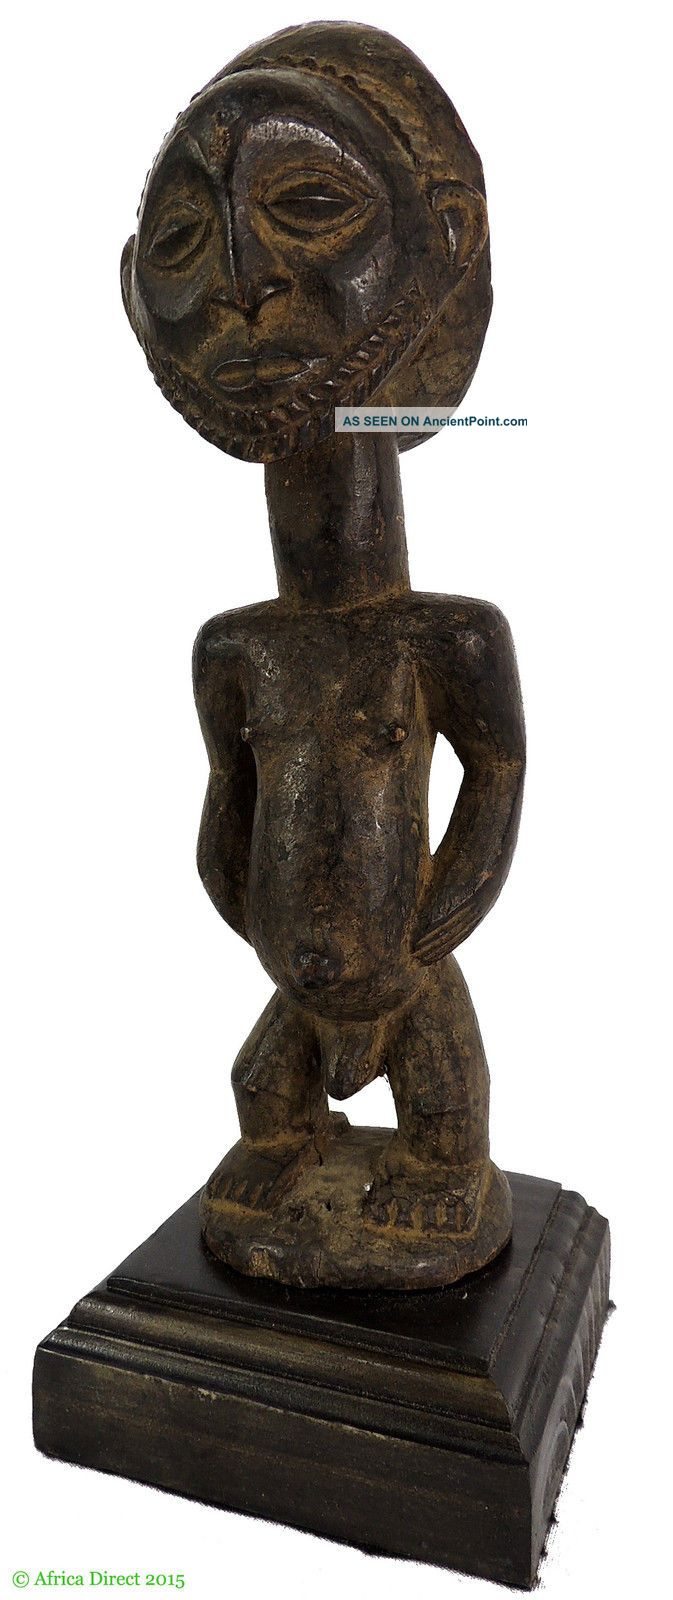 Hemba Standing Male On Stand Congo African Art Was $190.  00 Sculptures & Statues photo